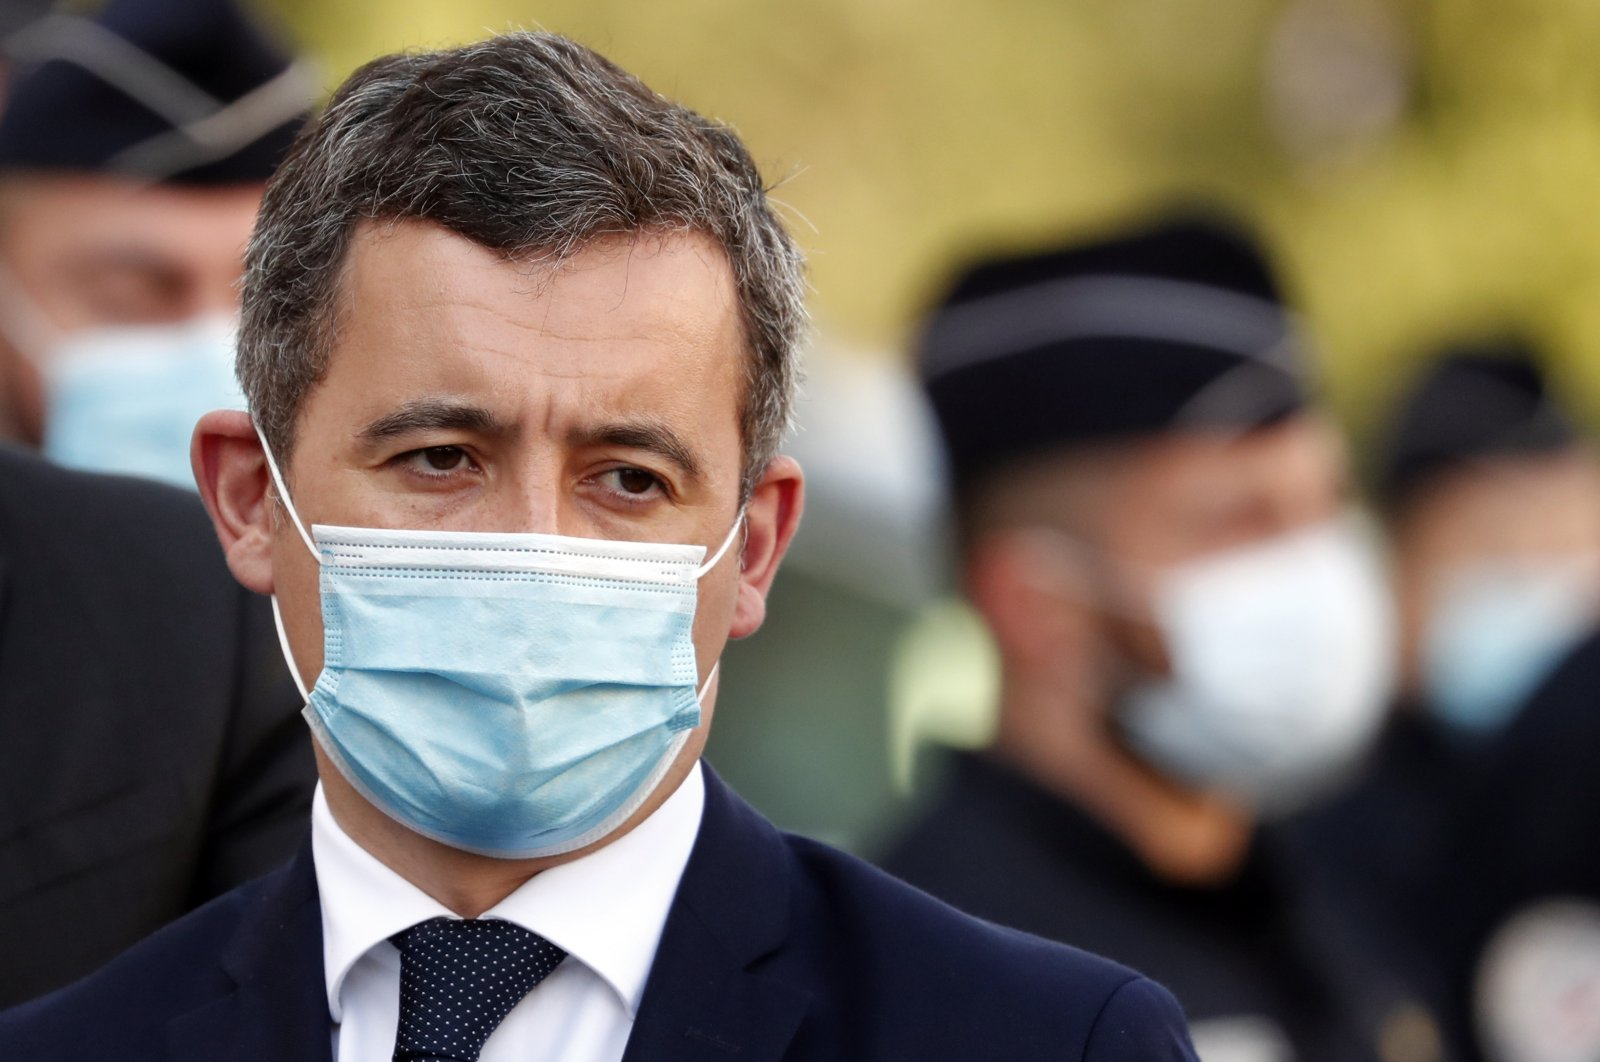 French Interior Minister Gerald Darmanin visits the North Division police station of Marseille, France, Feb. 25, 2021. (EPA Photo)